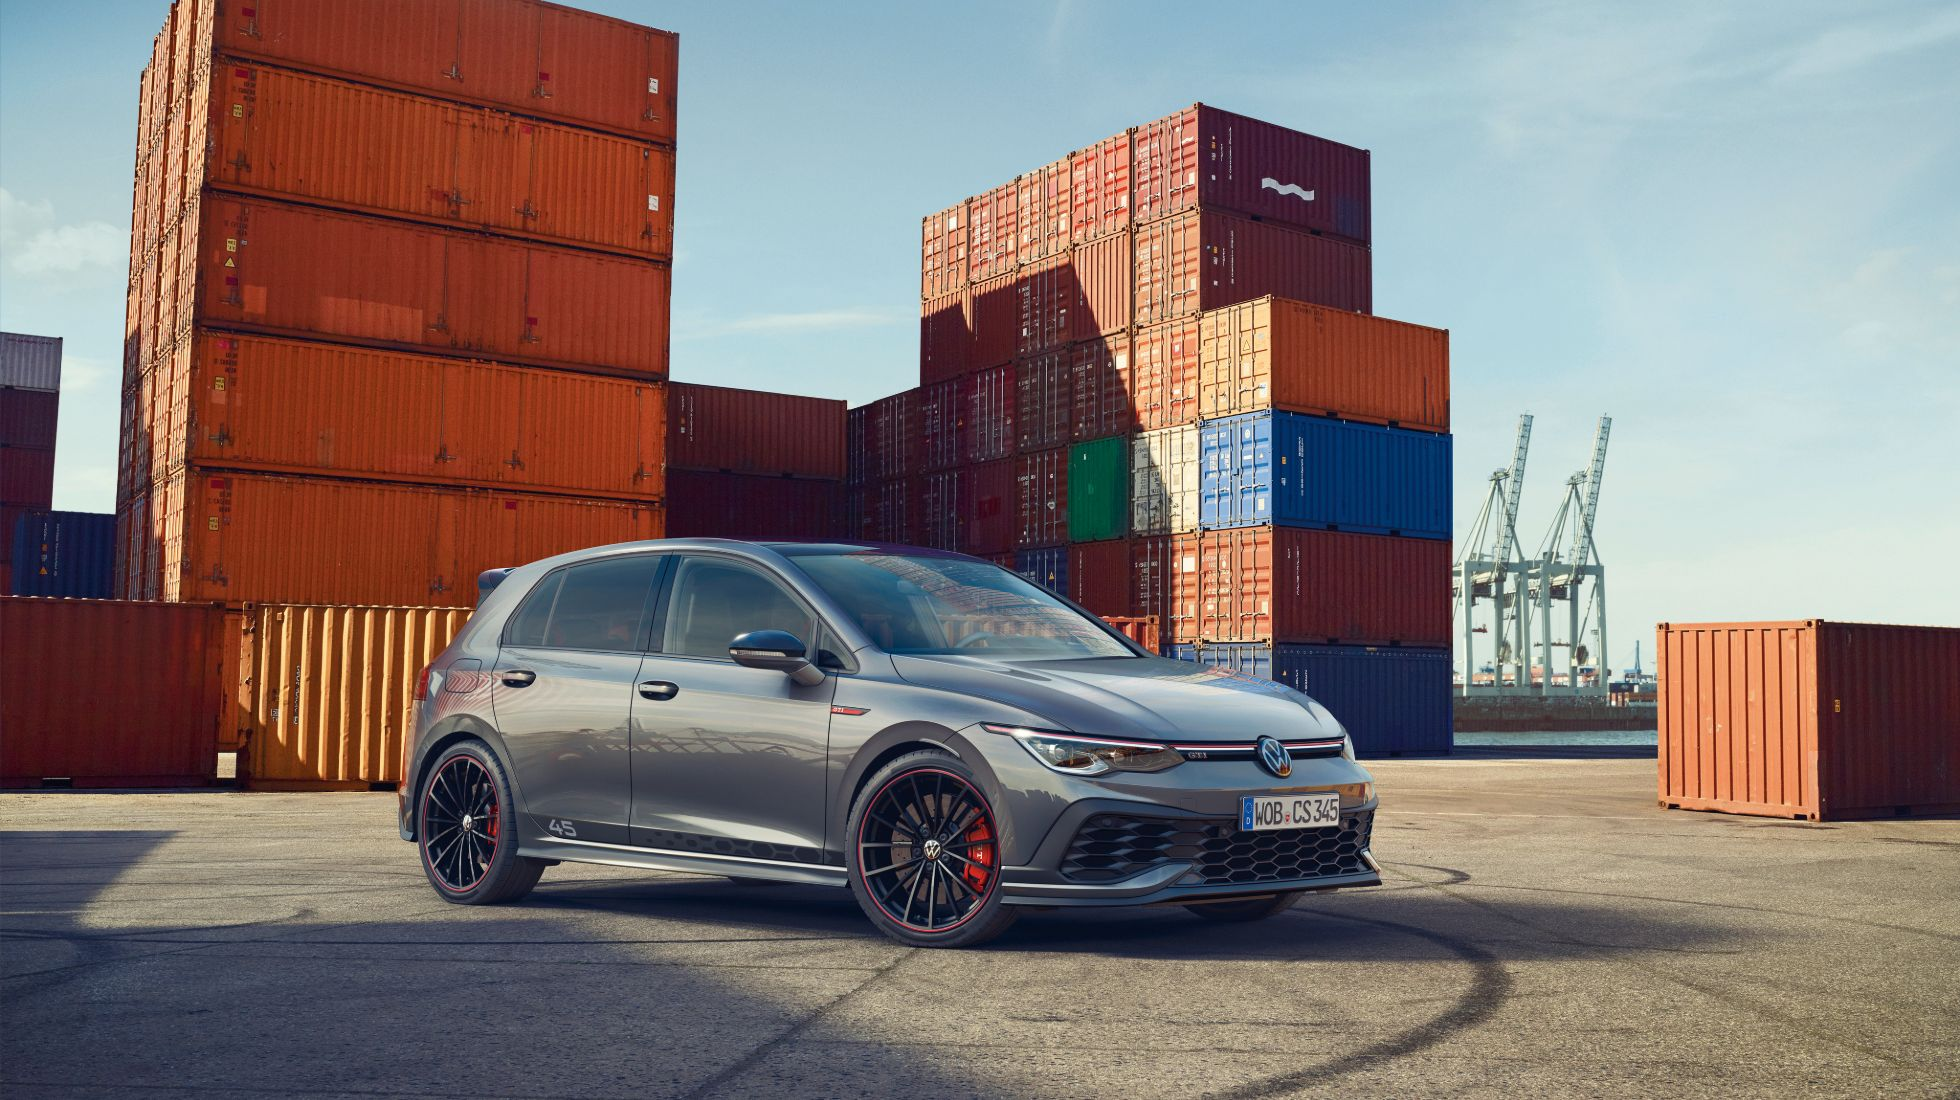 Golf 8 GTI Clubsport 45 revealed